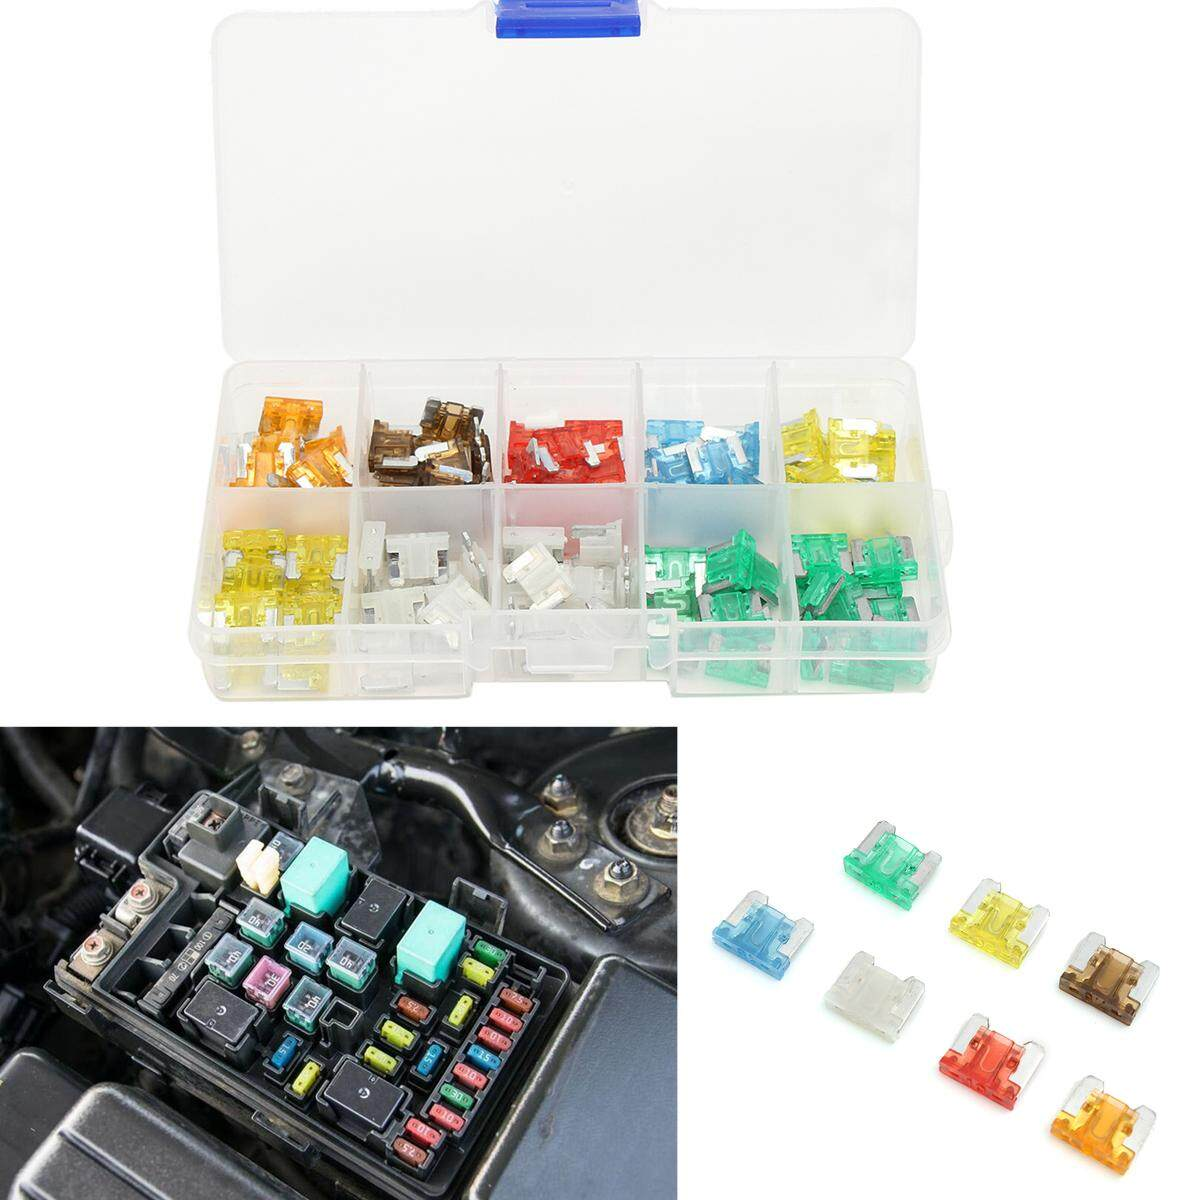 Buy Sell Cheapest 5 30 Mini Best Quality Product Deals Amp Car Fuse Box 100pcs Truck Low Profile Assorted 75 10 15 20 25